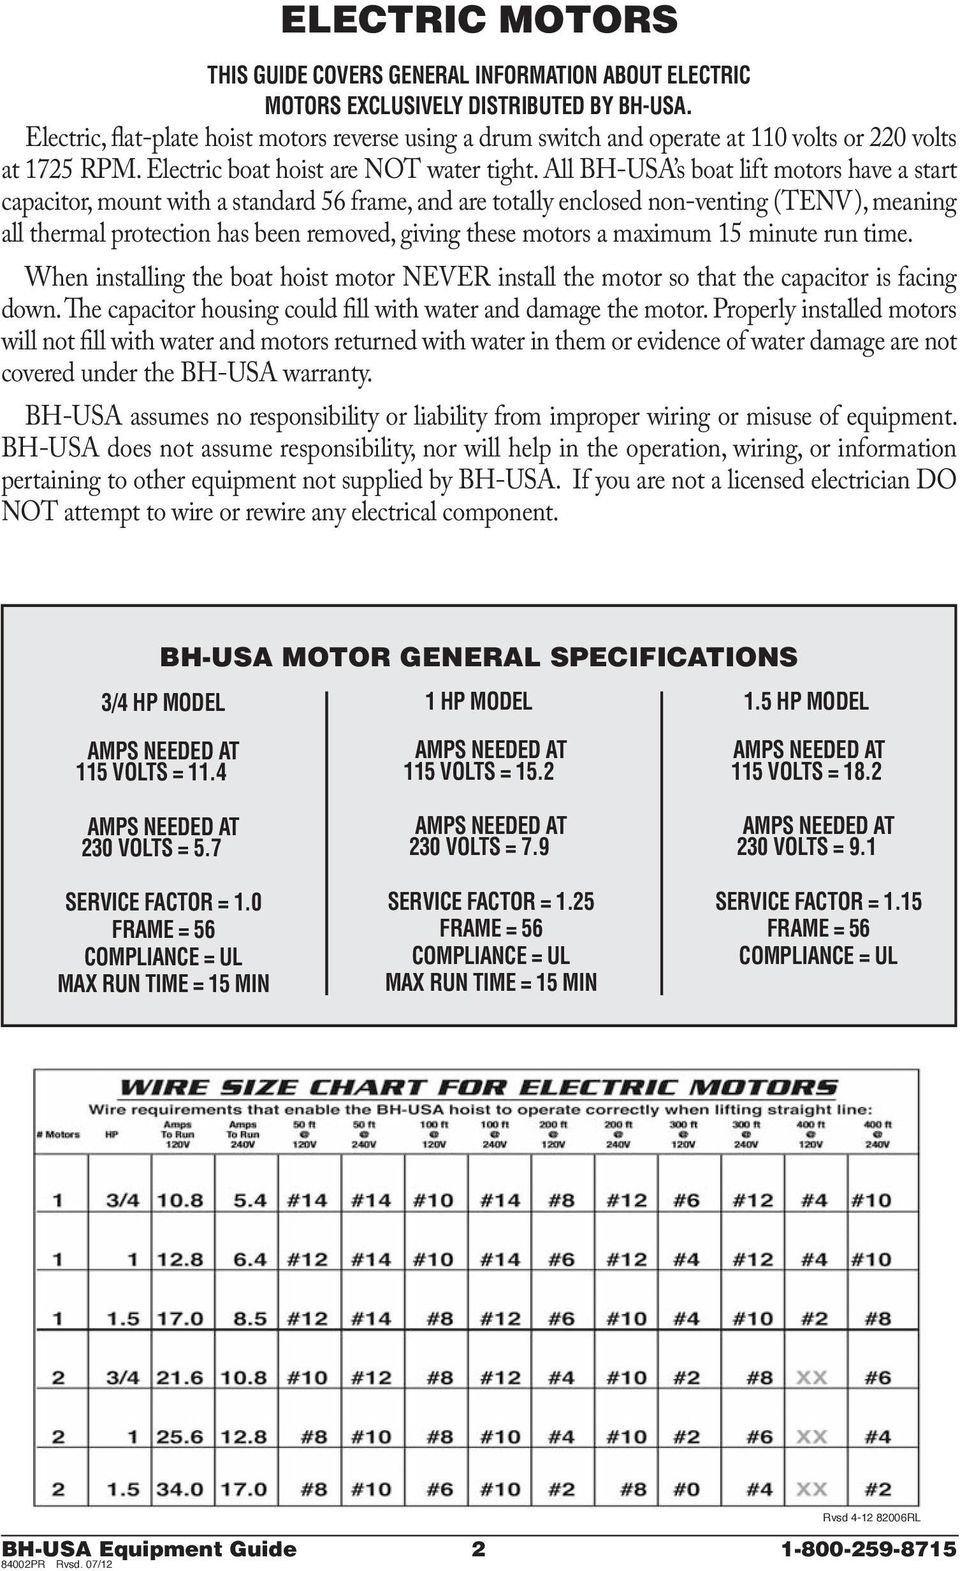 EQUIPMENT GUIDE. Rvsd THIS GUIDE IS INTENDED FOR THE END USER. GEAR on electric motor diagram, marathon motor mounting diagram, 1990 454 efi electrical diagram, single-phase motor reversing diagram, disconnect electrical motor connection diagram, marathon parts diagram, marathon motor serial number, ao smith motor parts diagram, marathon pool motor replacement, marathon motor parts, marathon motor water pump, marathon generators wire diagram, marathon electric pancake generator,